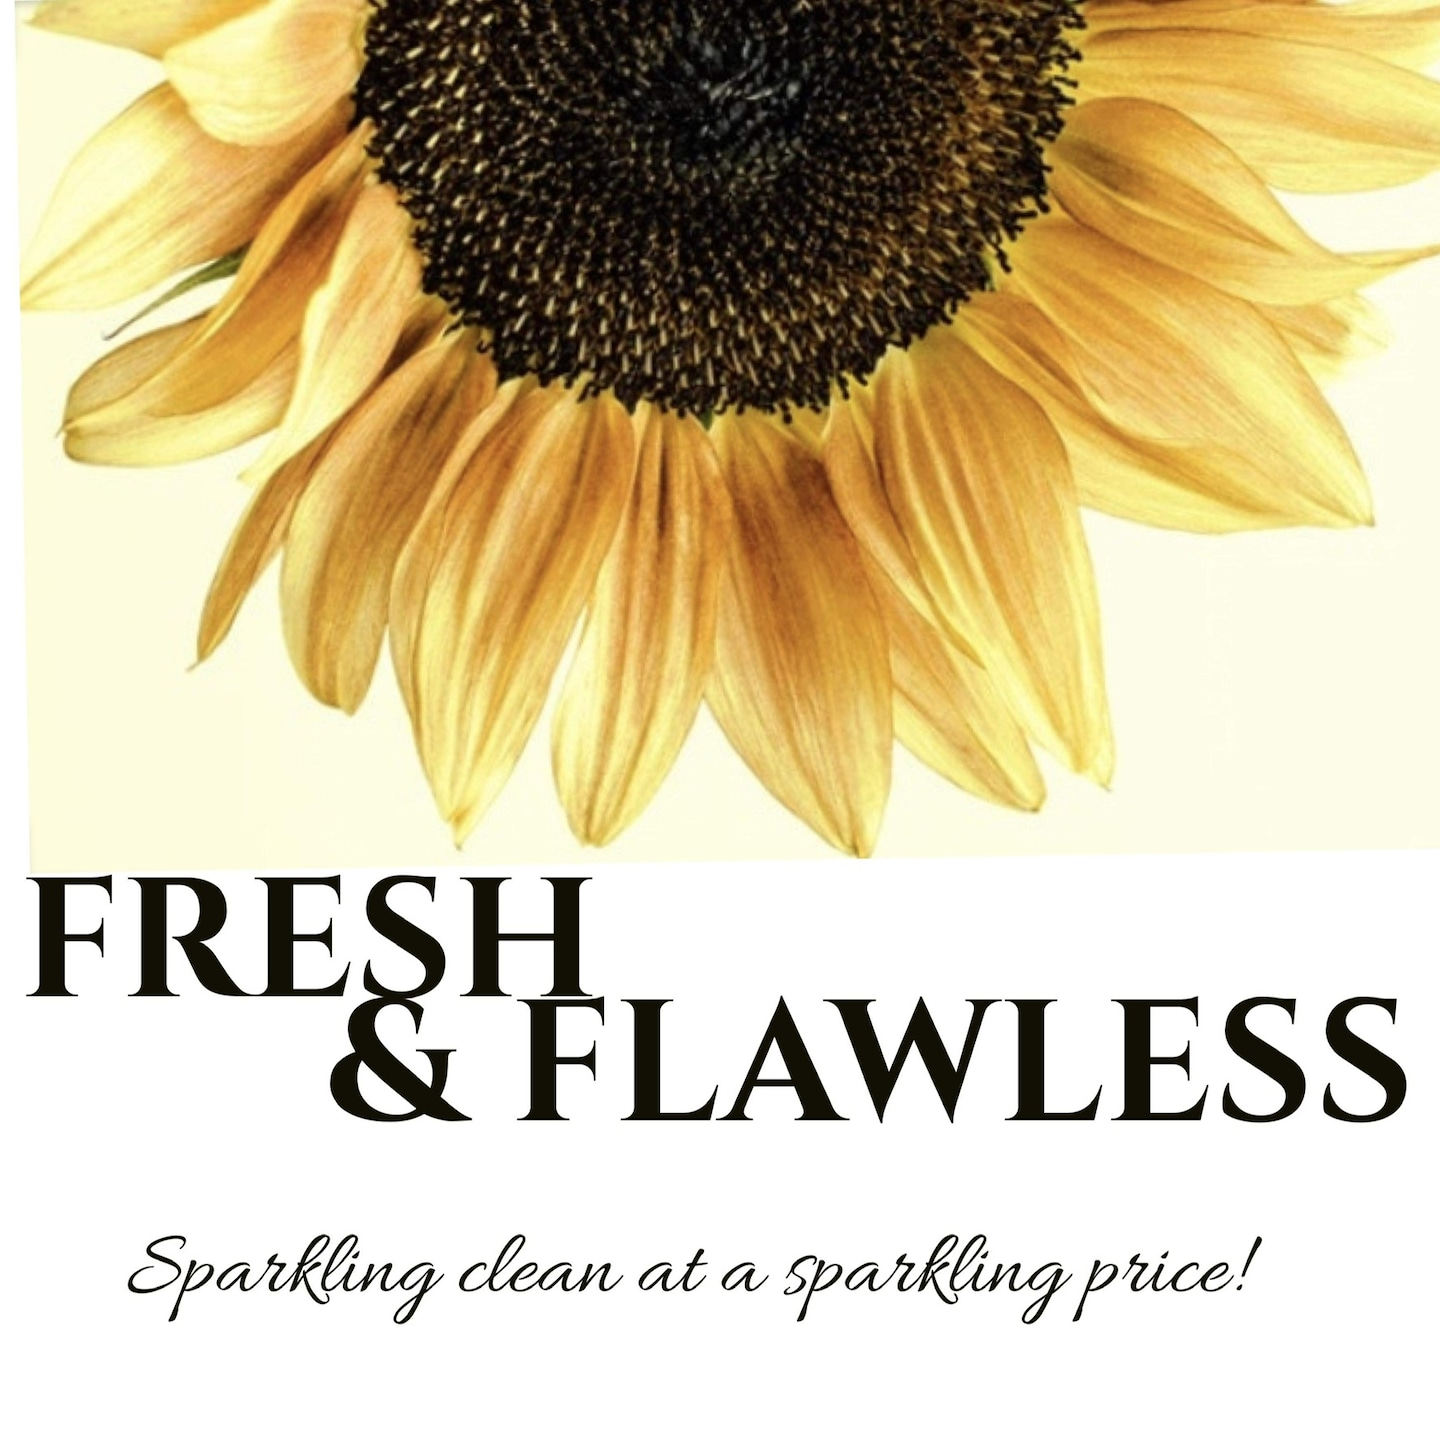 Fresh & Flawless Cleaning